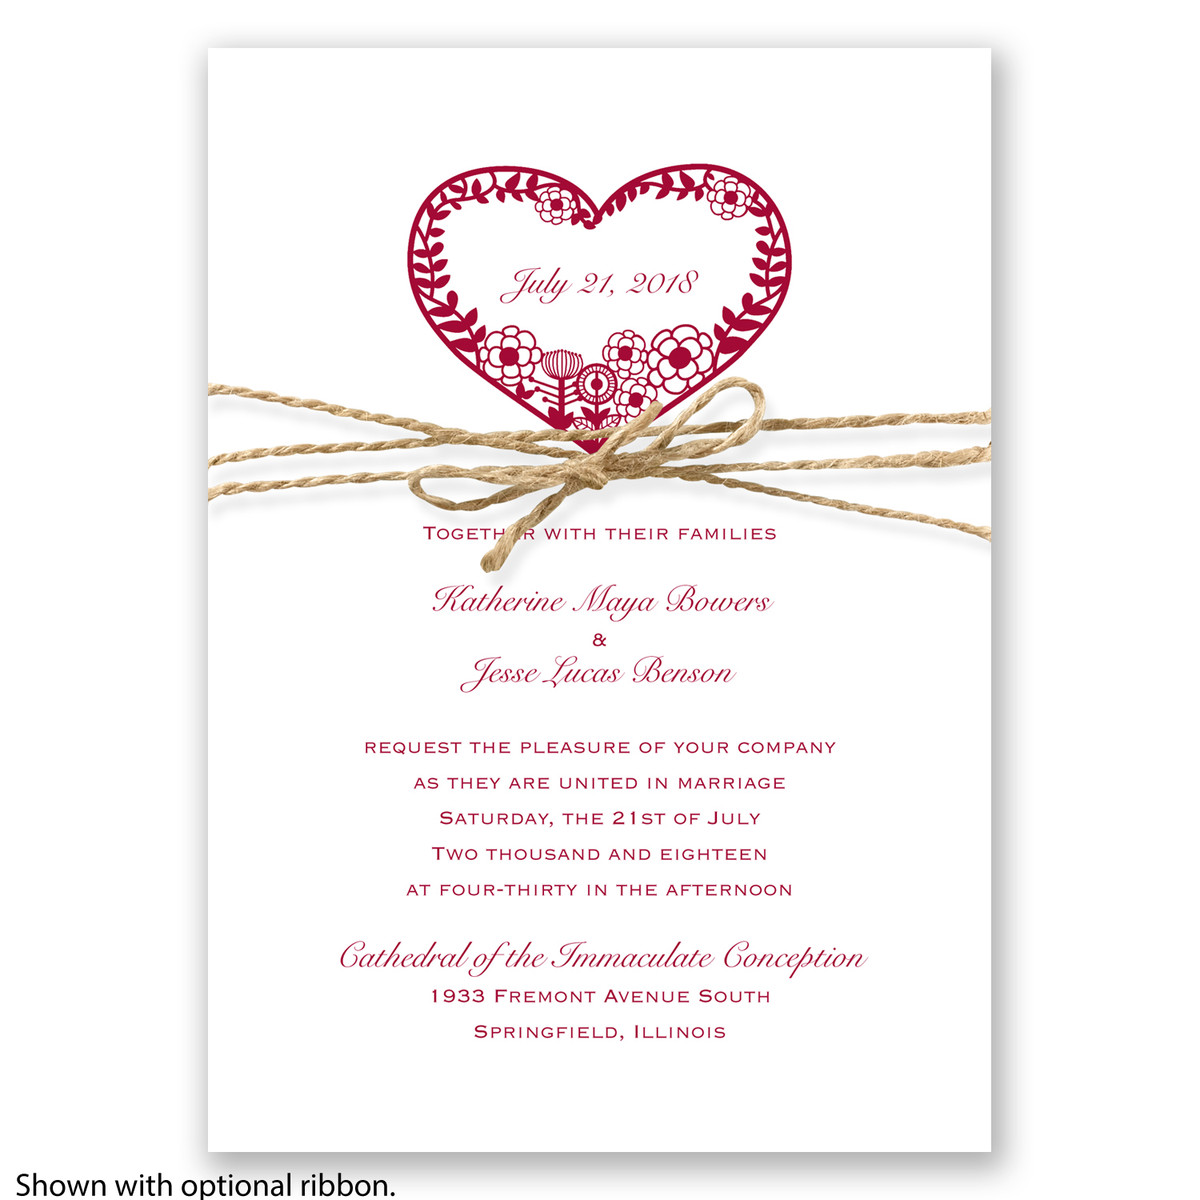 Davids Bridal Wedding Invitations 017 - Davids Bridal Wedding Invitations